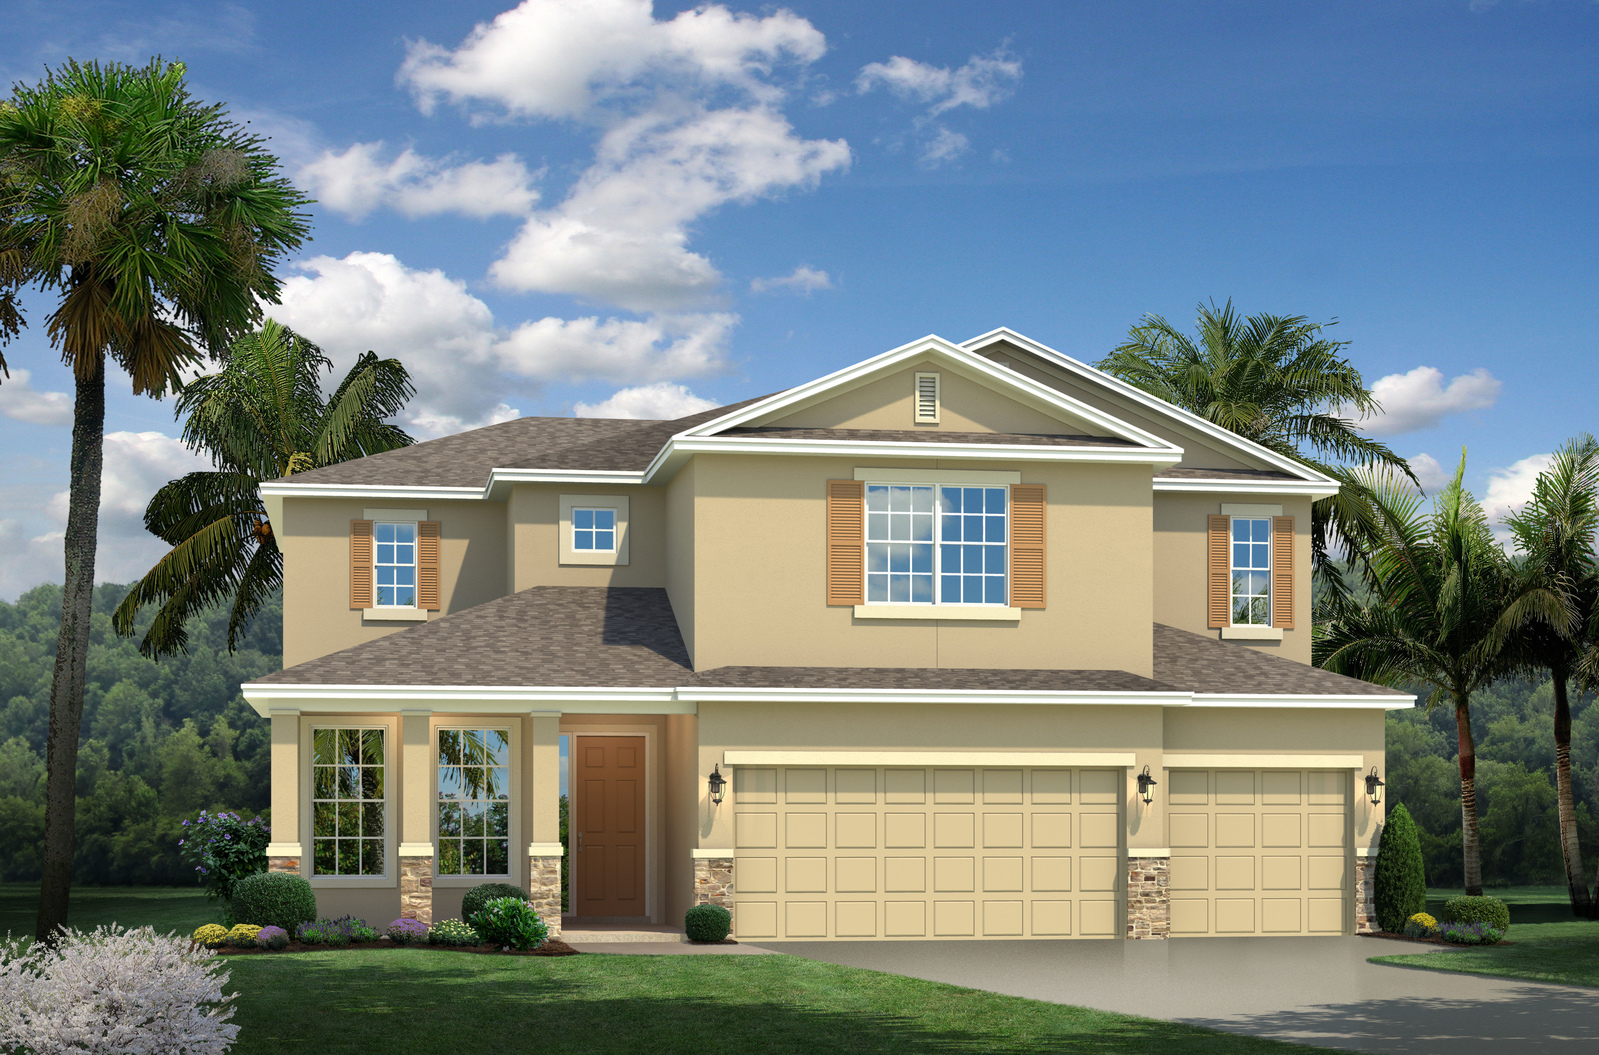 New Single Family Homes For Sale In Tampa Fl